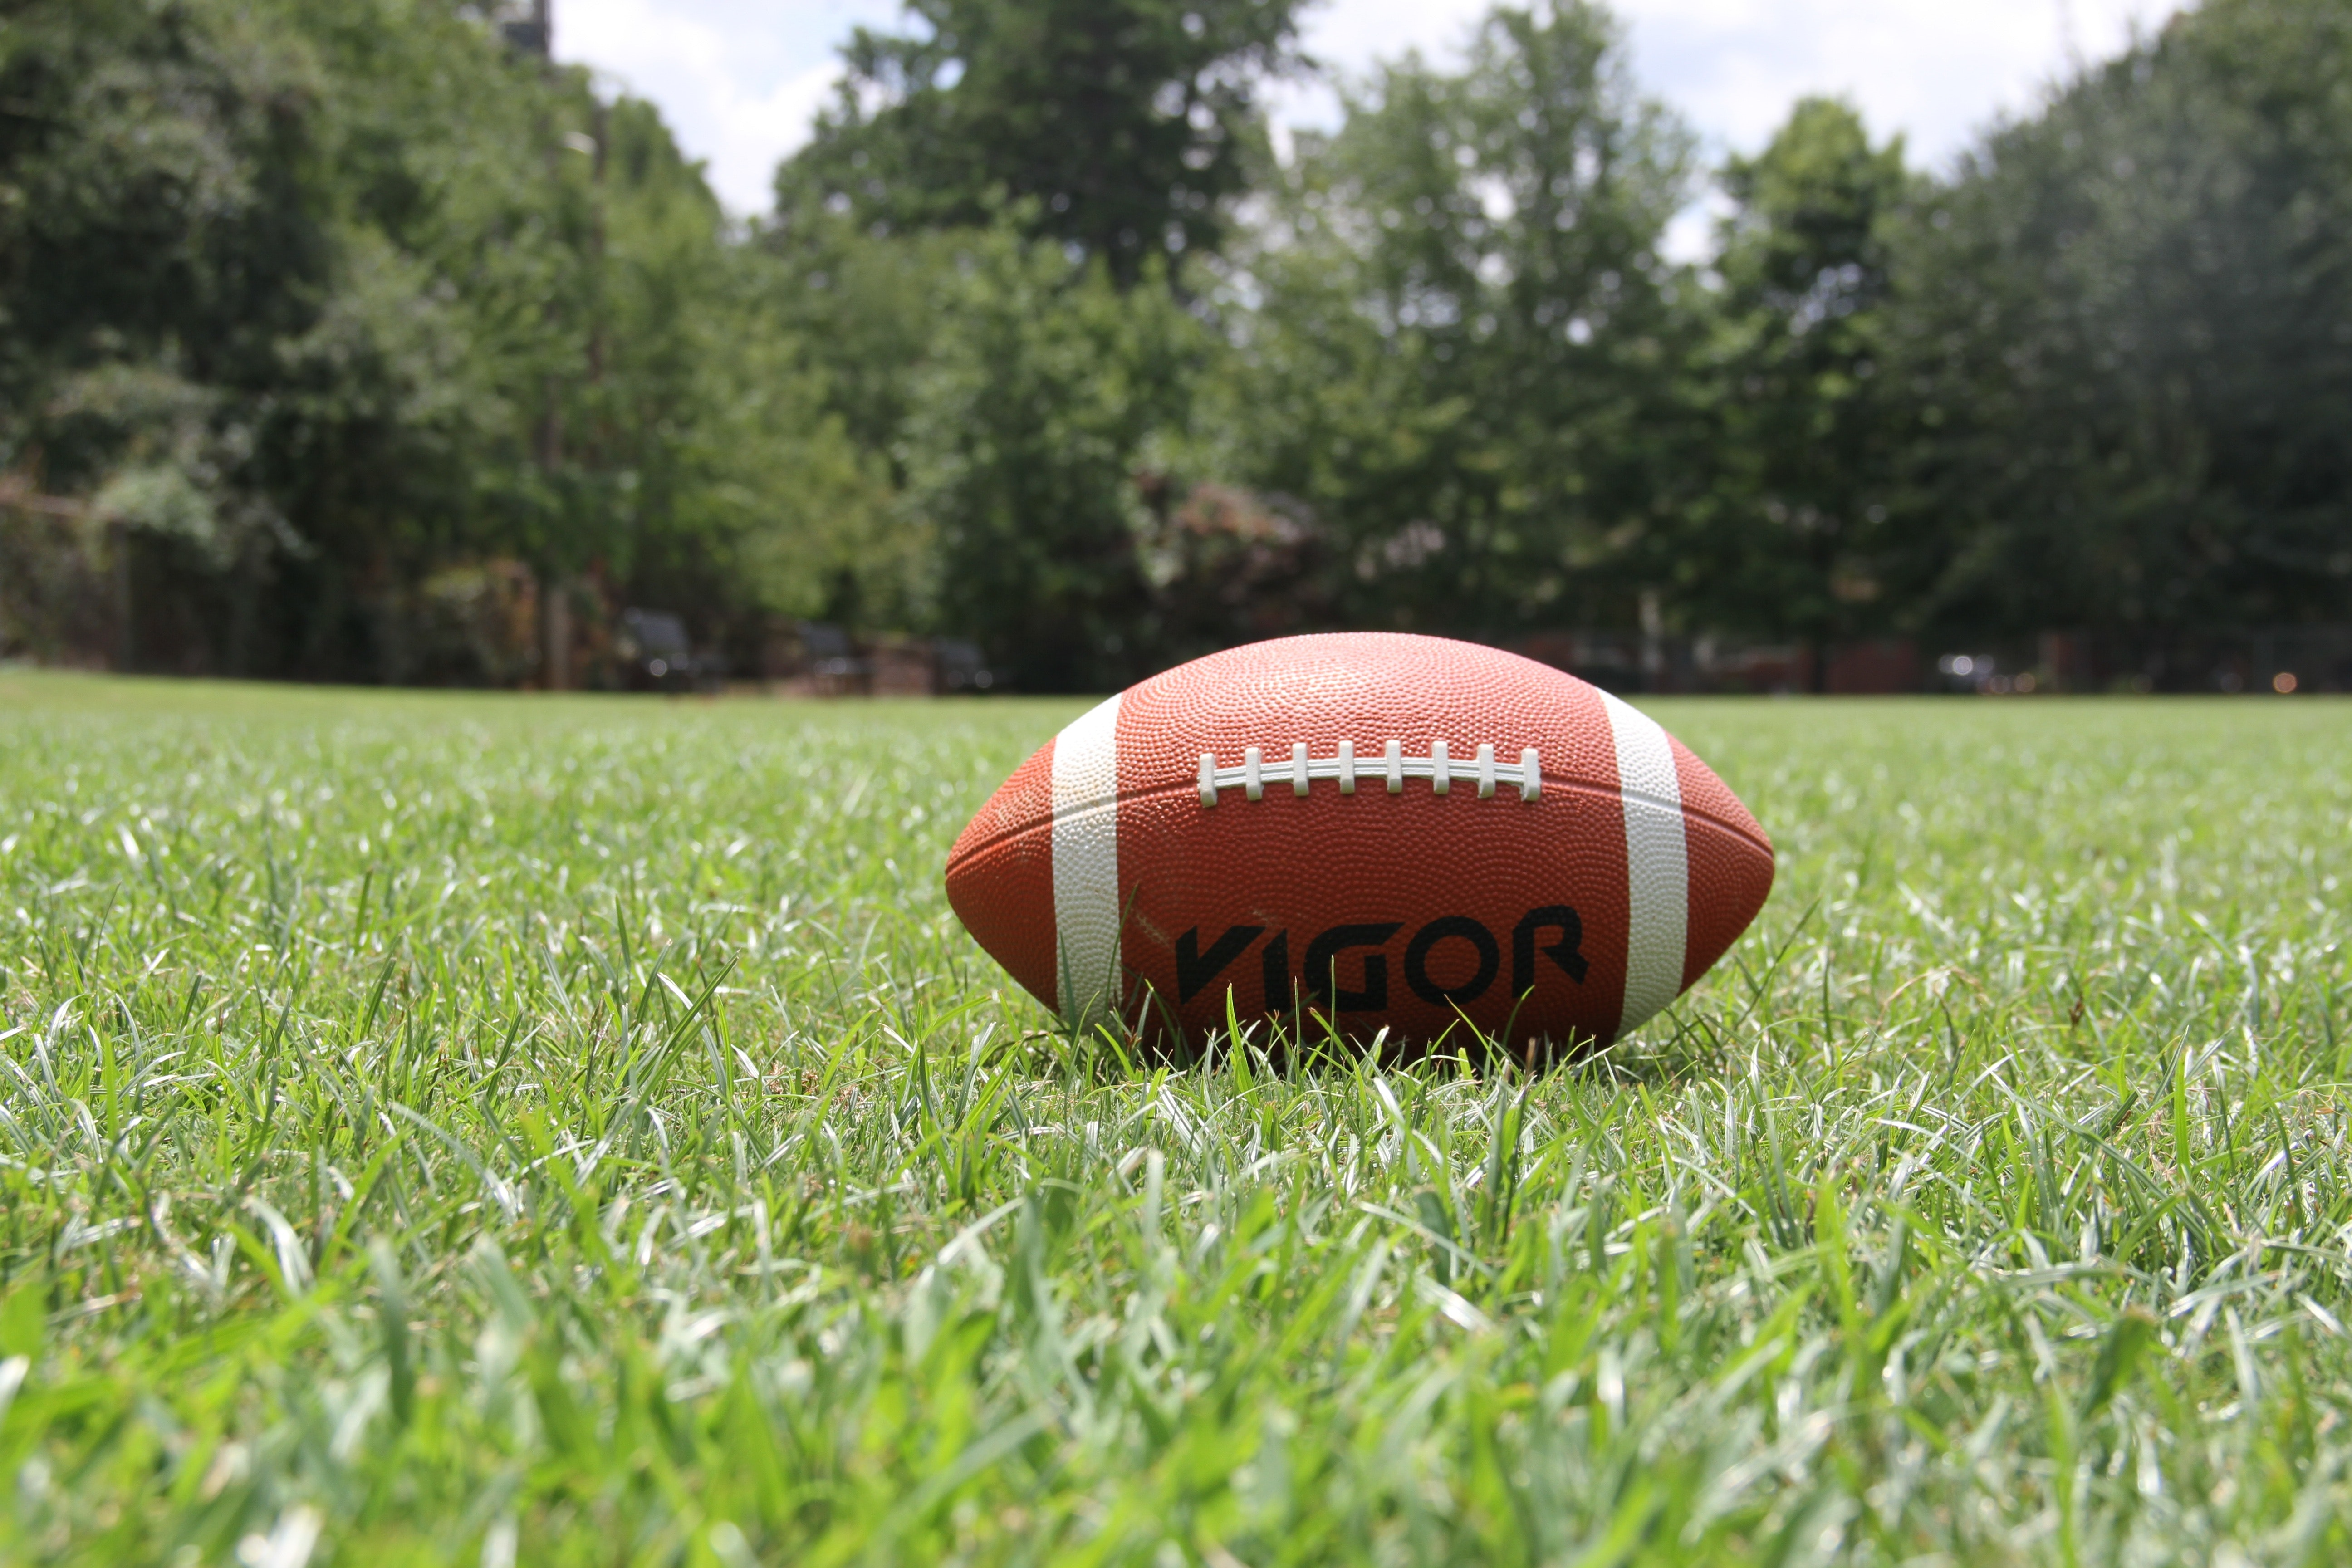 60 American Football Field Wallpapers: Football Pictures · Pexels · Free Stock Photos